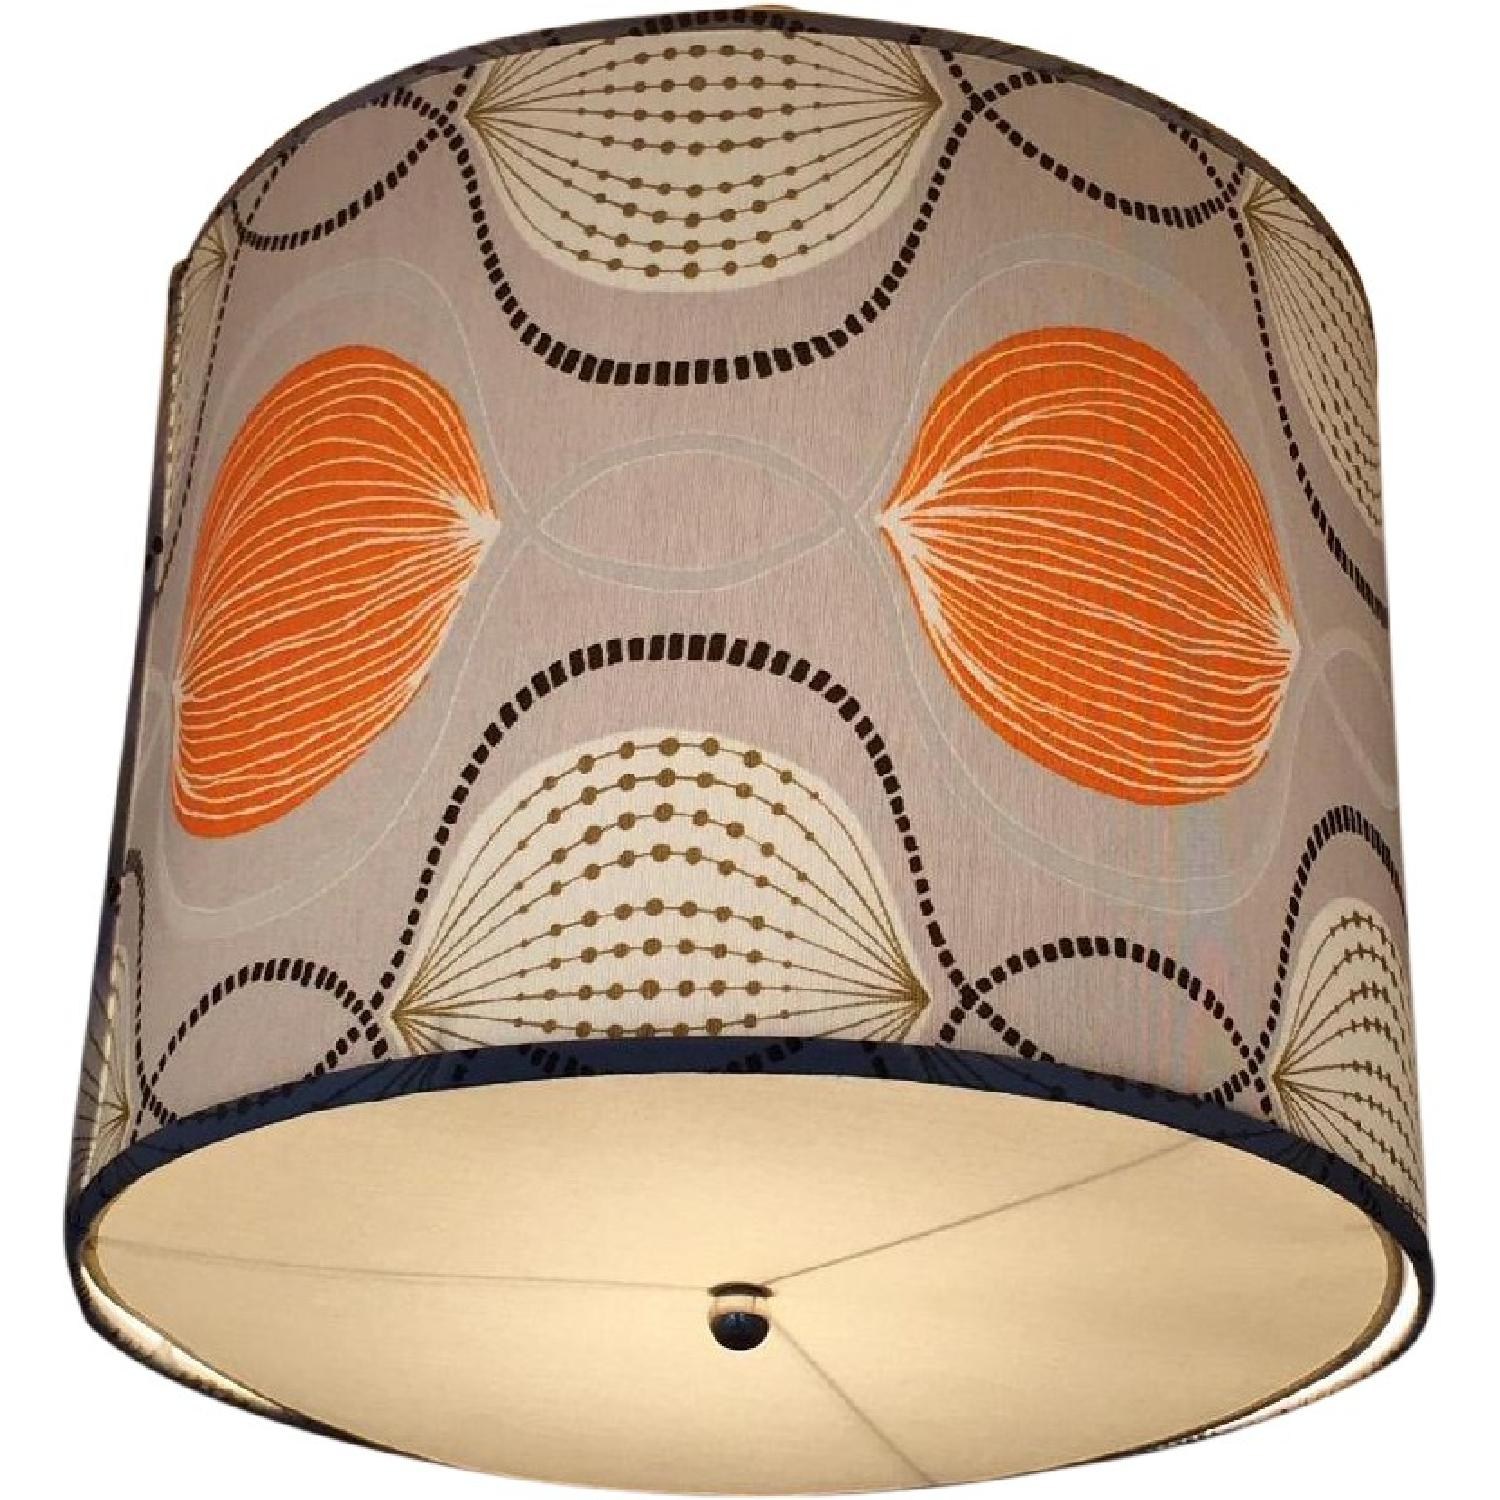 Custom Drum Ceiling Light - Gray & Orange - image-0